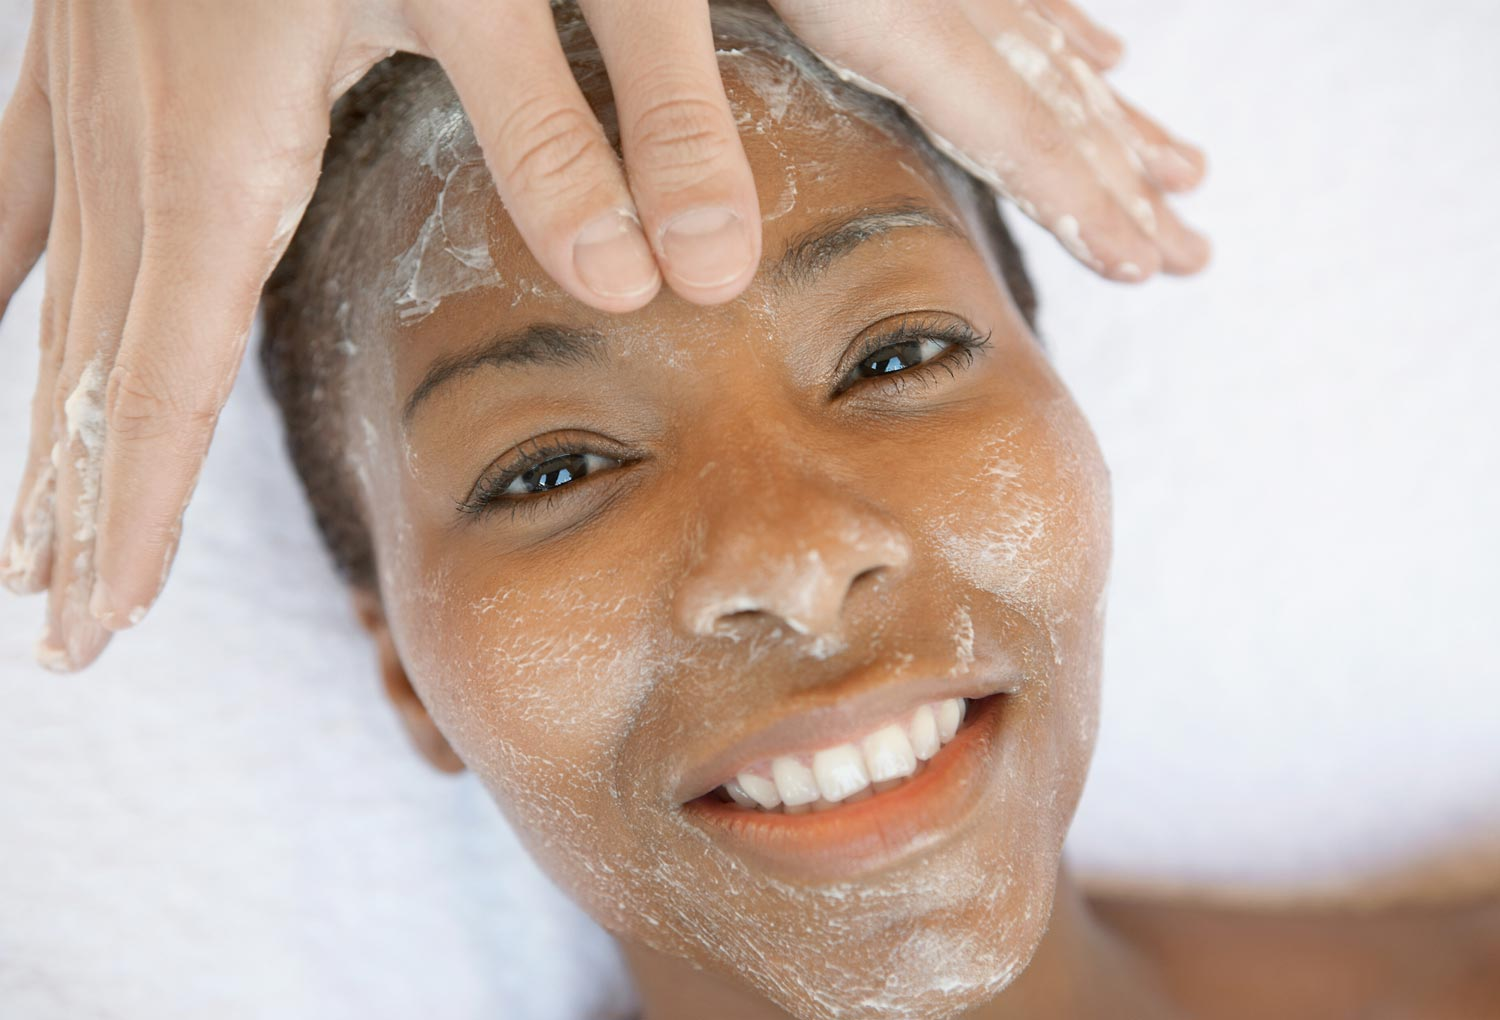 medical grade facials for self-care